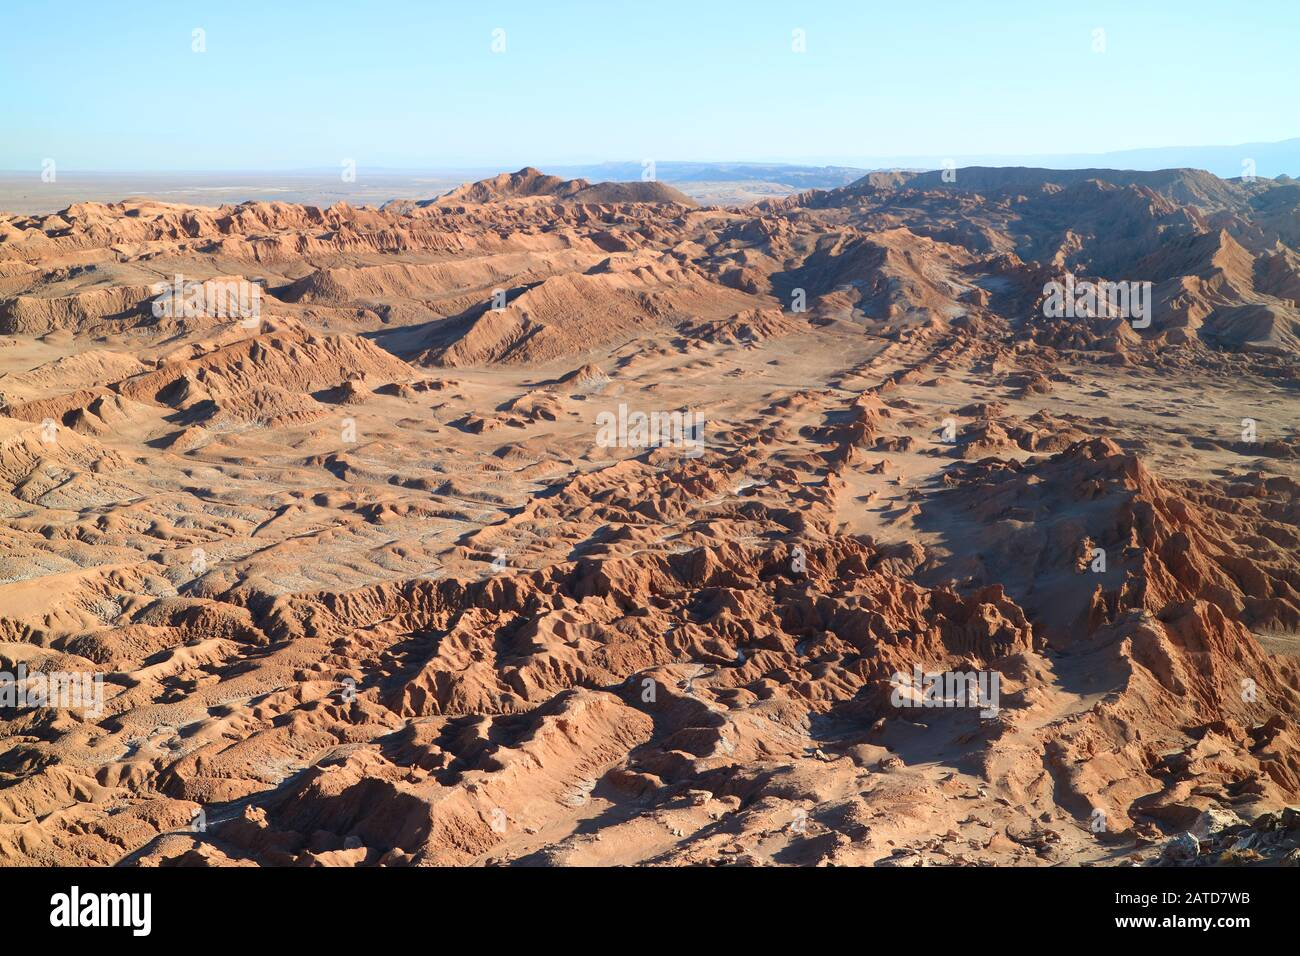 Amazing Rock Formations At Valle De La Luna Or Valley Of The Moon Atacama Desert In Northern Chile Stock Photo Alamy